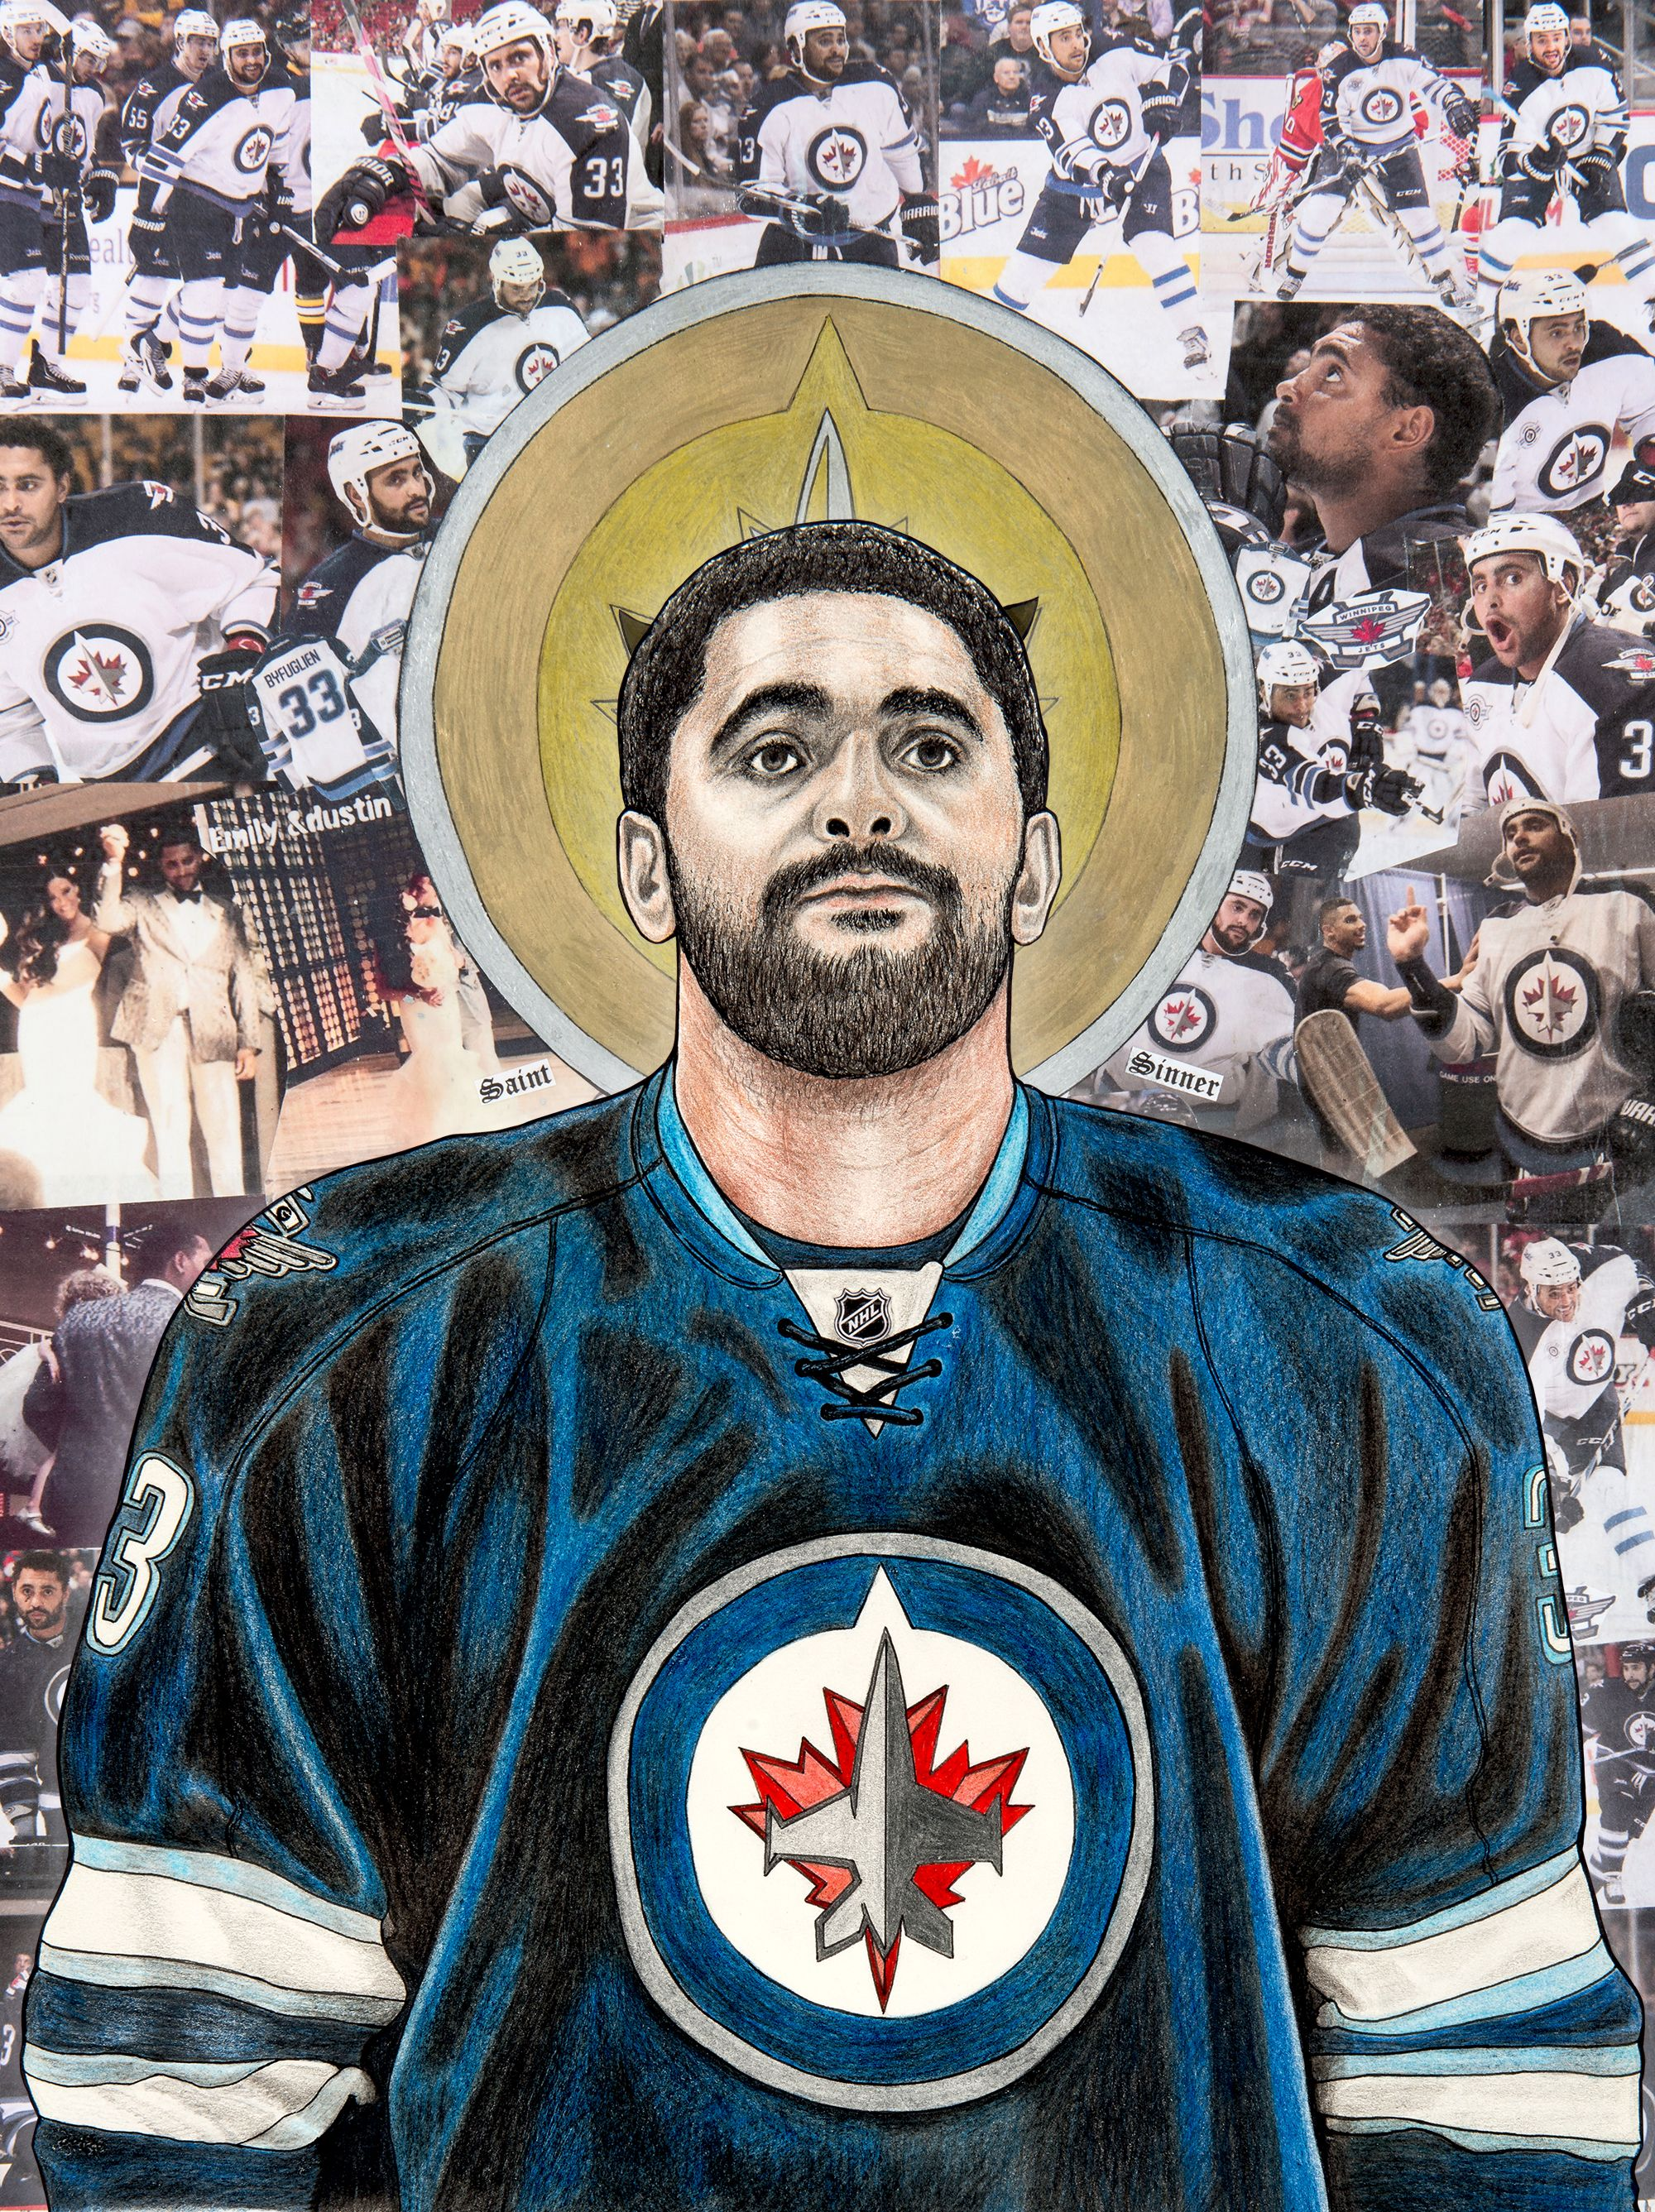 New better quality digital print image of Dustin Byfuglien. Saint and Sinner (with horns).